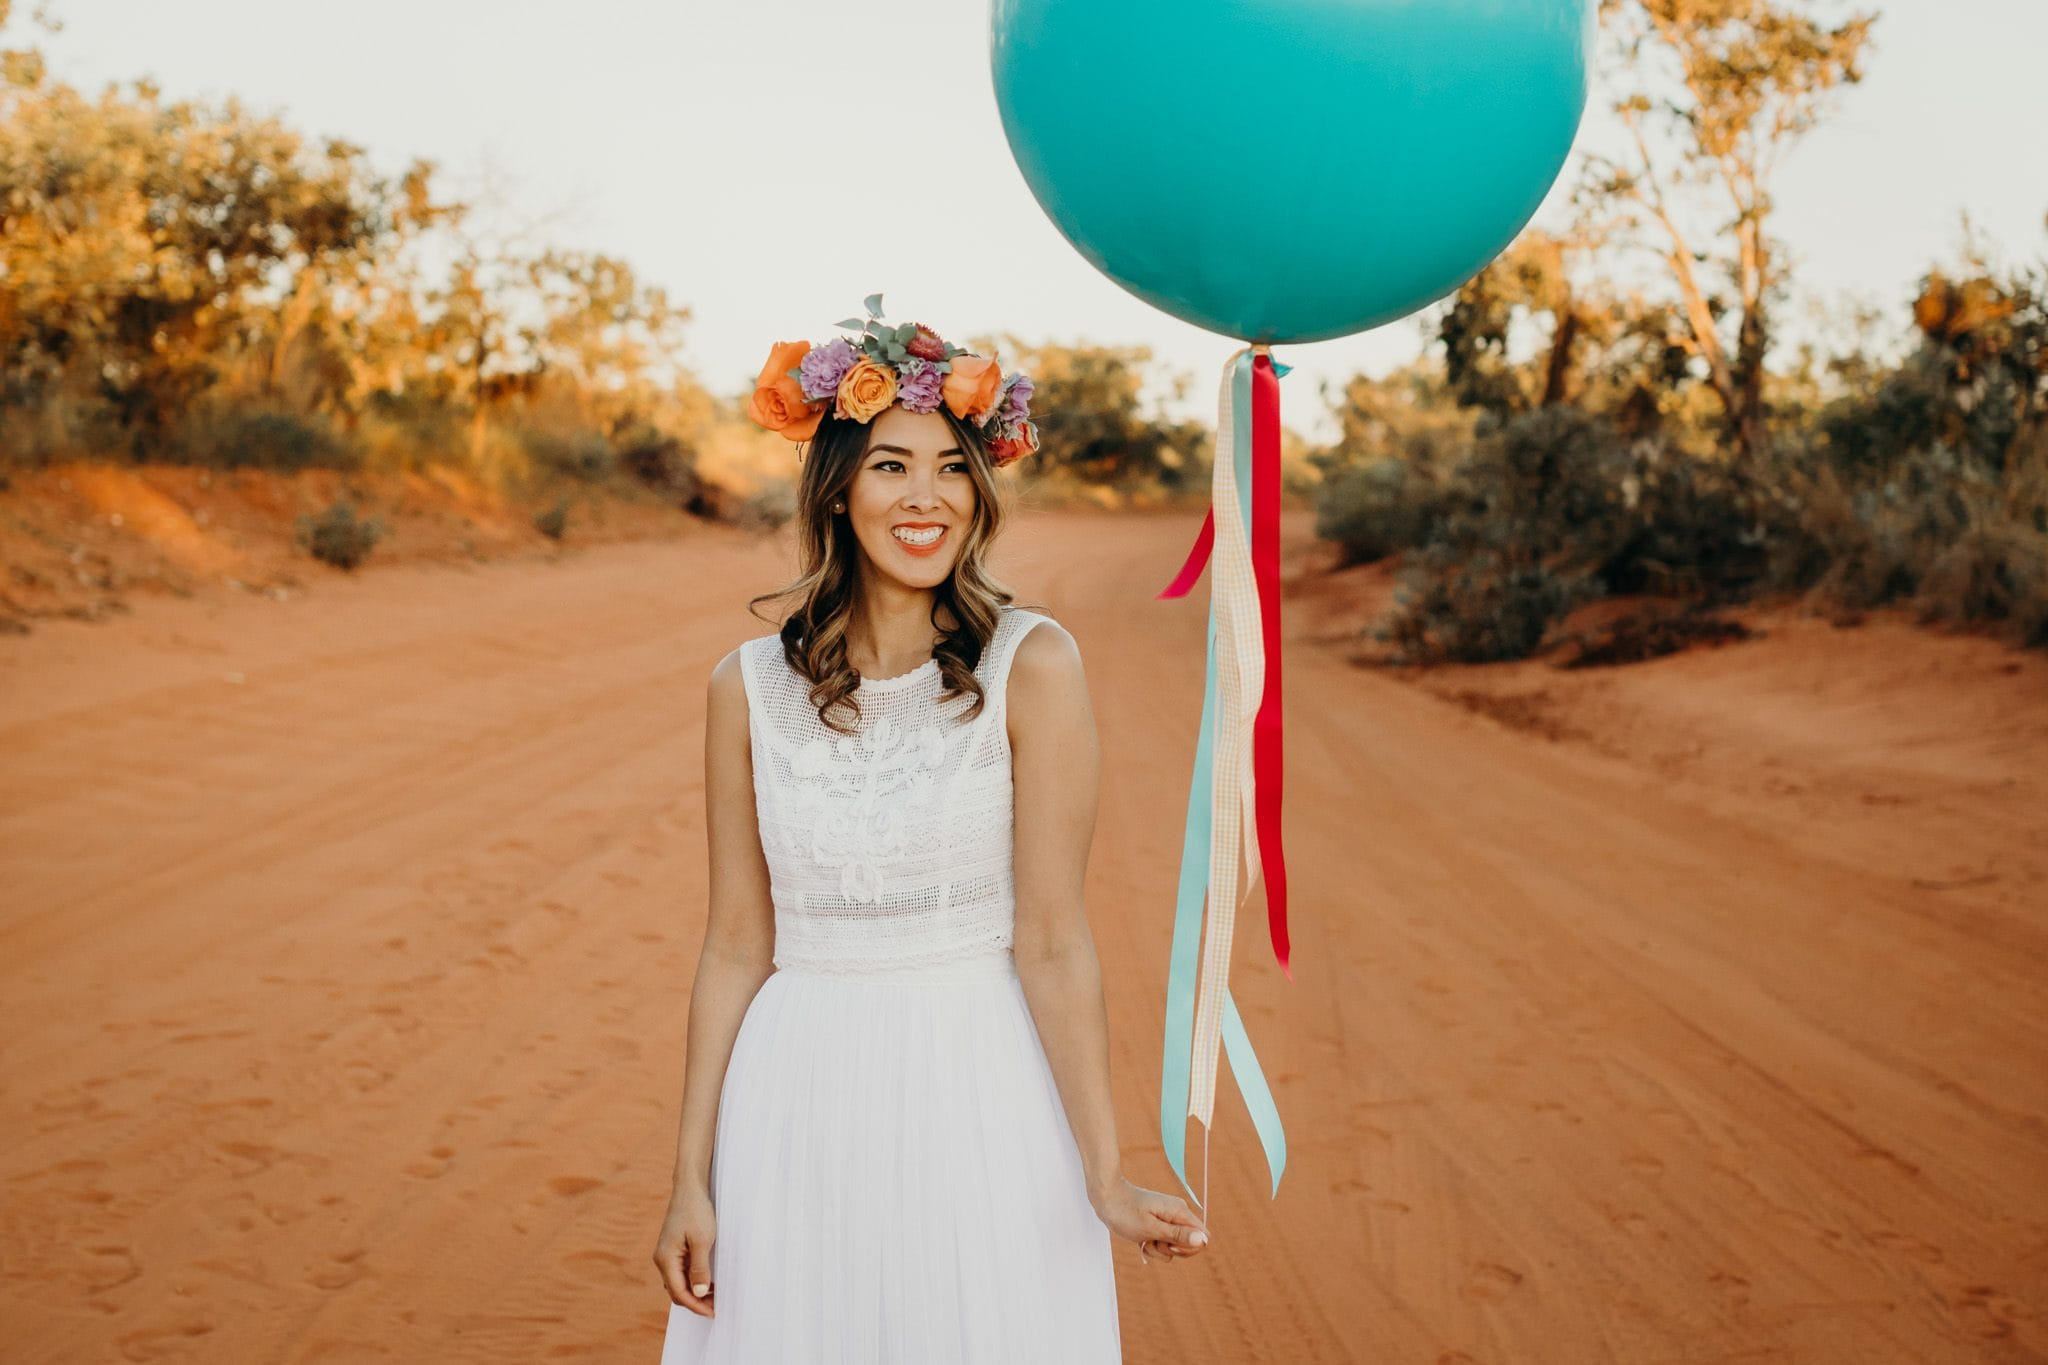 bride in white dress standing on dirt road in the Kimberley with balloon